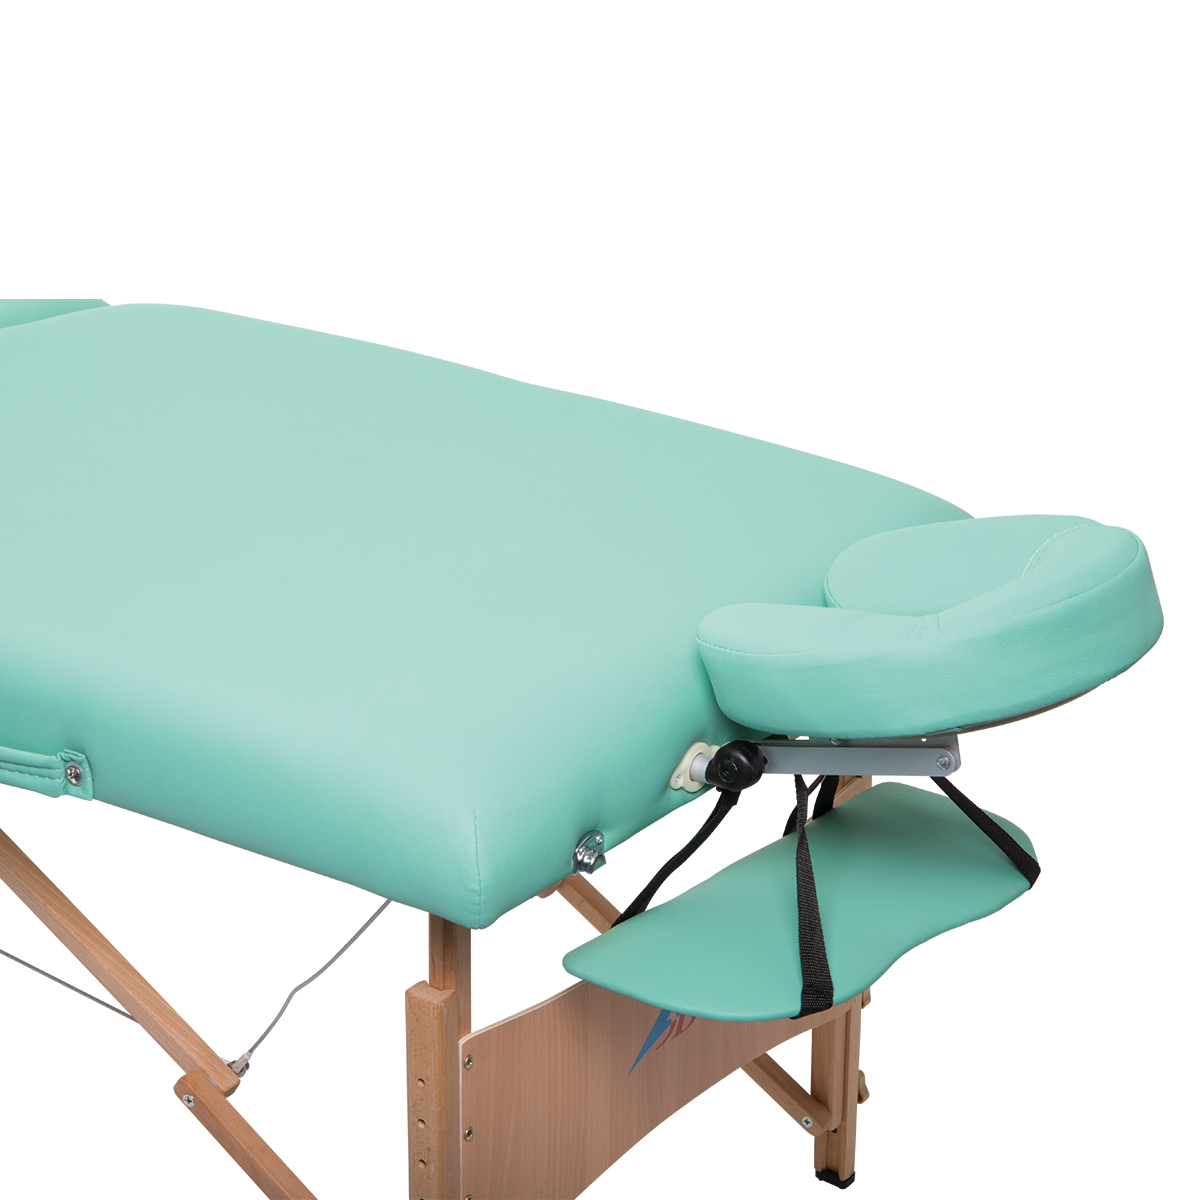 Deluxe Portable Massage Table Green 1013728 3b